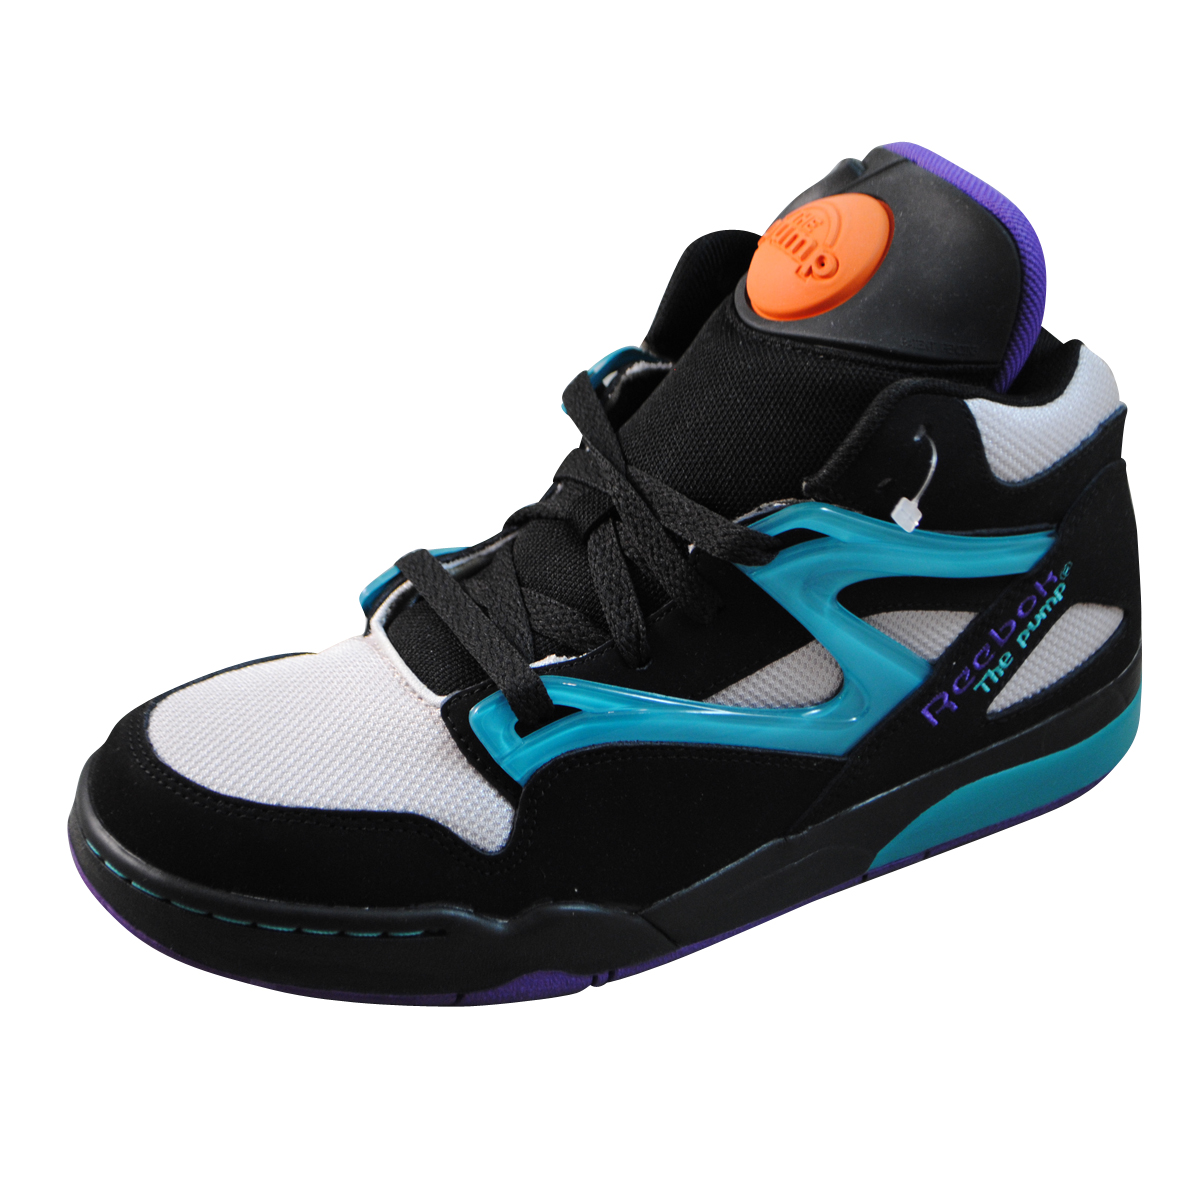 Reebok mens pump omni lite black basketball shoes v45019 ebay - Basket reebok pump omni lite ...